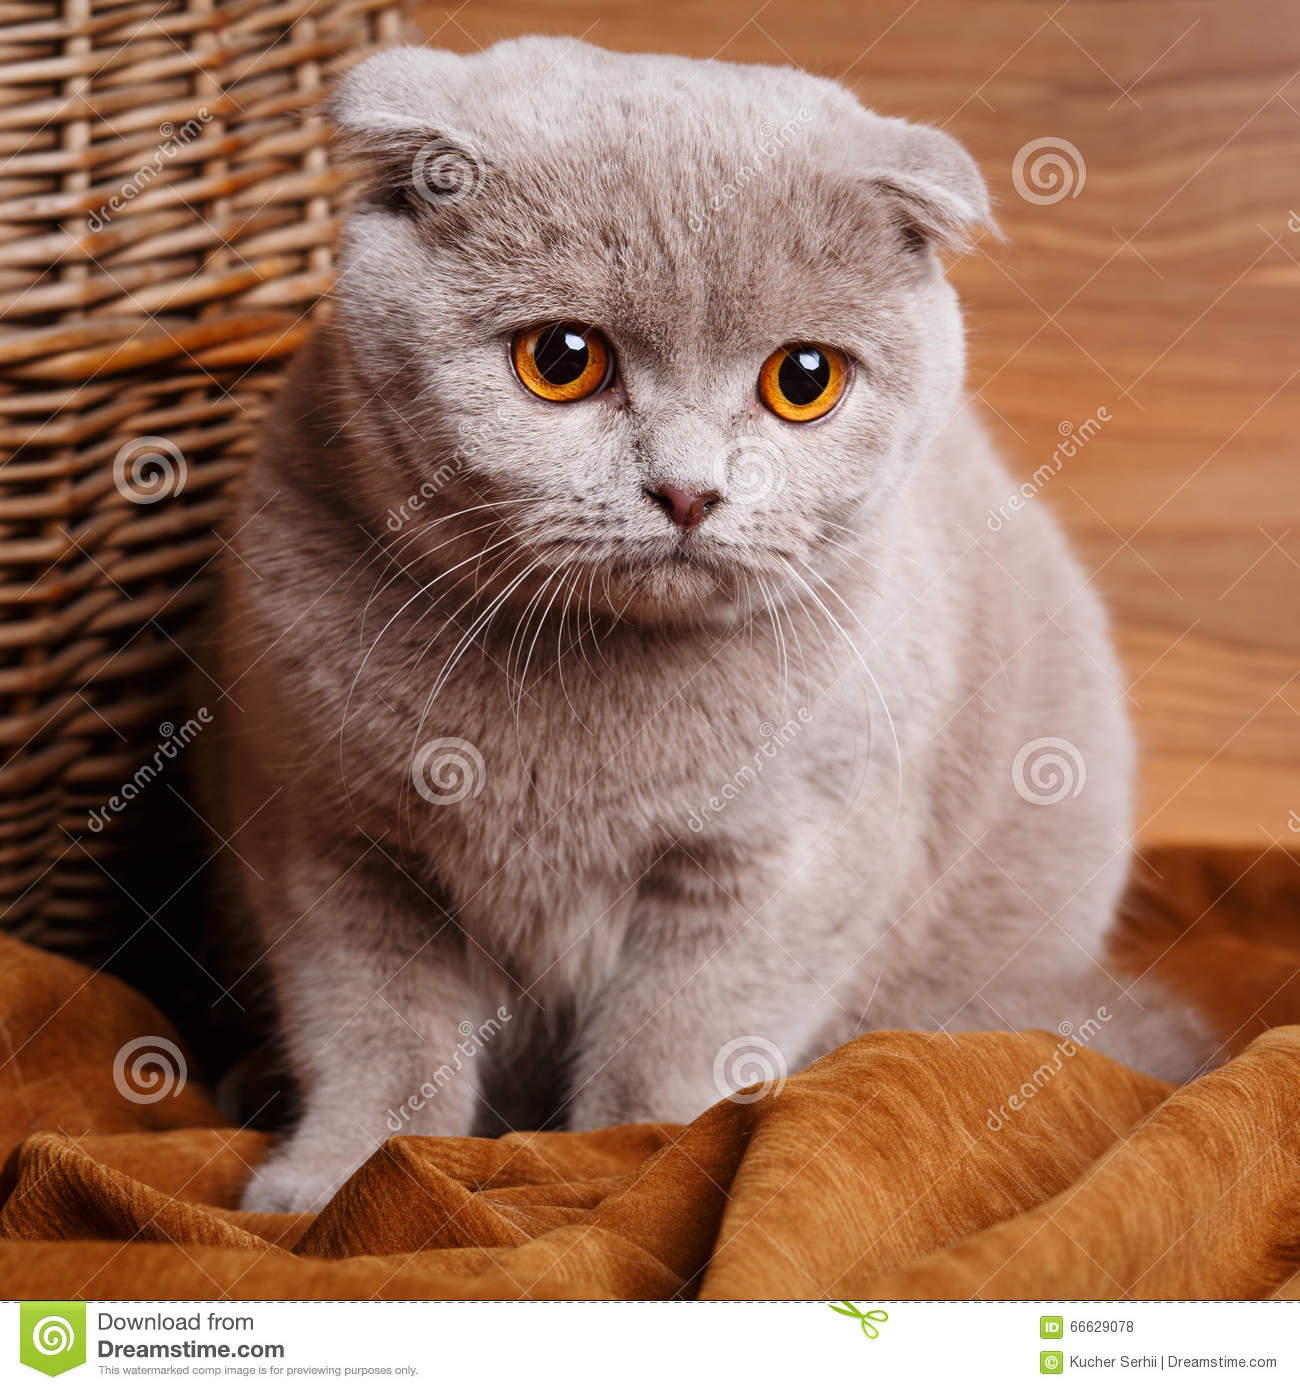 gray cat with yellow eyes scottish fold stock photo image 66629078. Black Bedroom Furniture Sets. Home Design Ideas